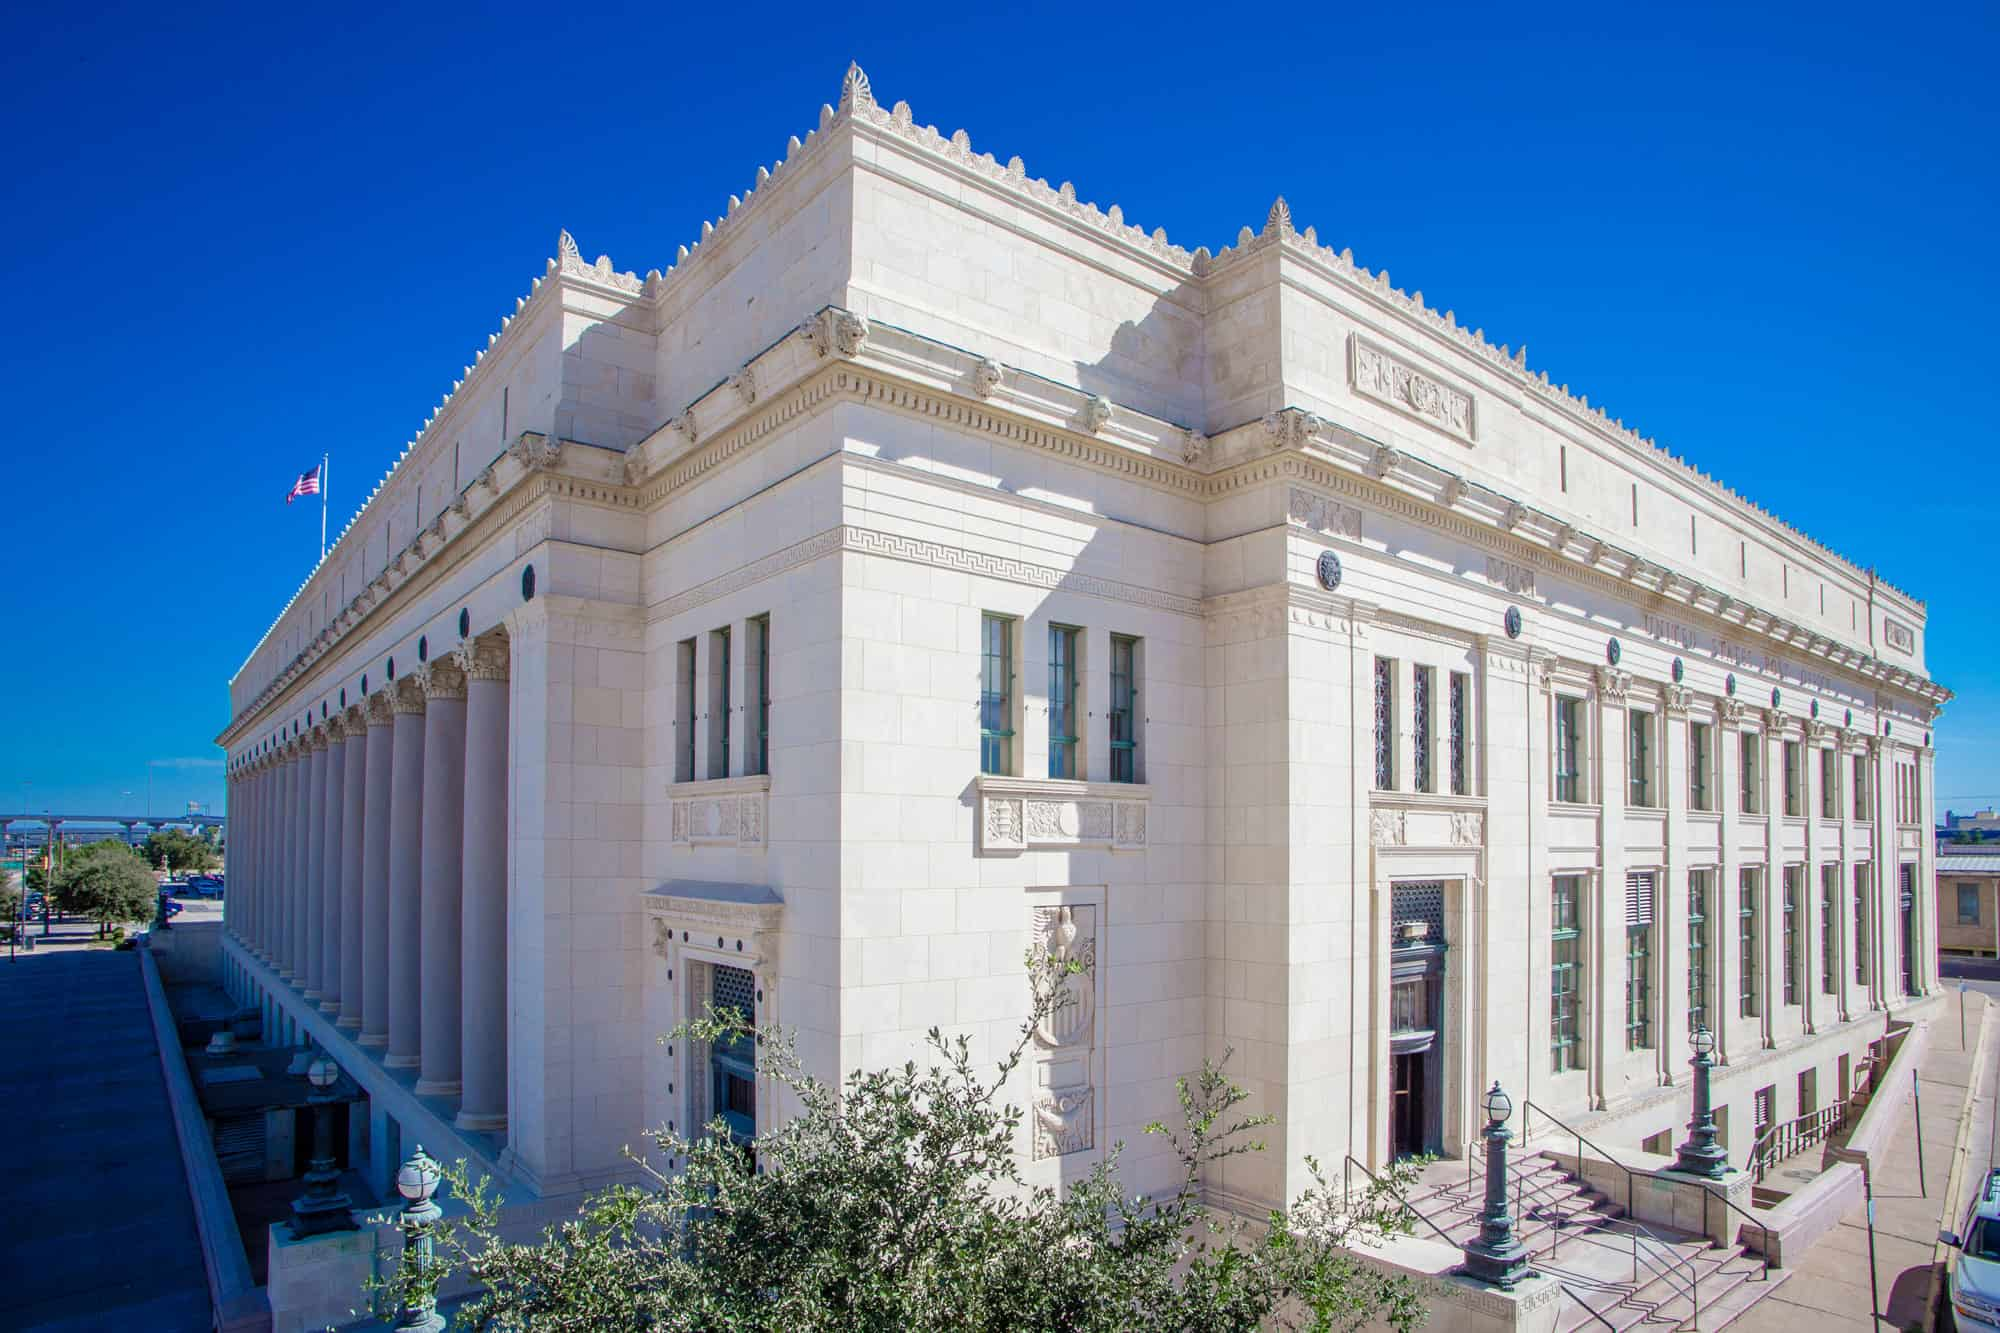 Fort Worth Post Office